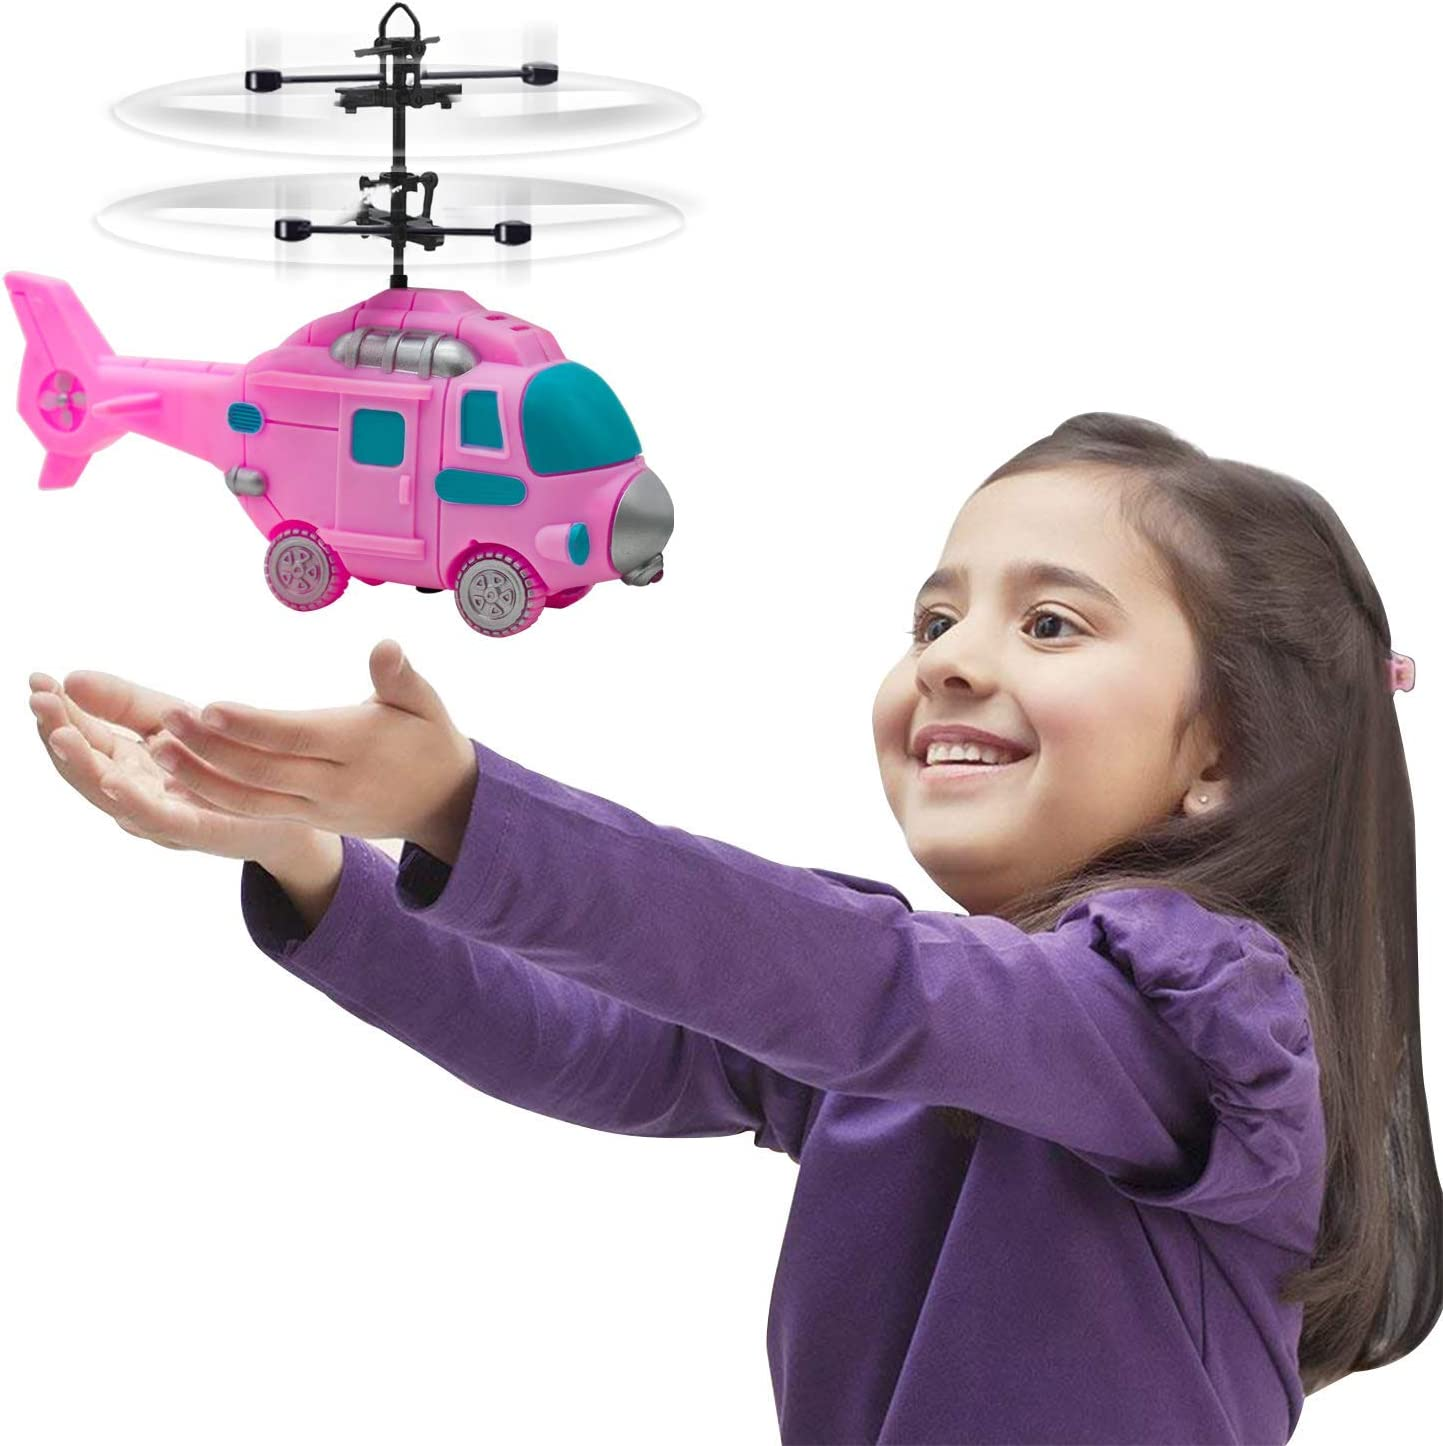 Years Old toys 2019 Helicopter Funny Kids Outdoor Toy Drone Childrens Day Gift Education Toy for Boys Girls Fun Toy for 5 6 7 Festiday 1PC Helicopter Toy Sale Kids Toy